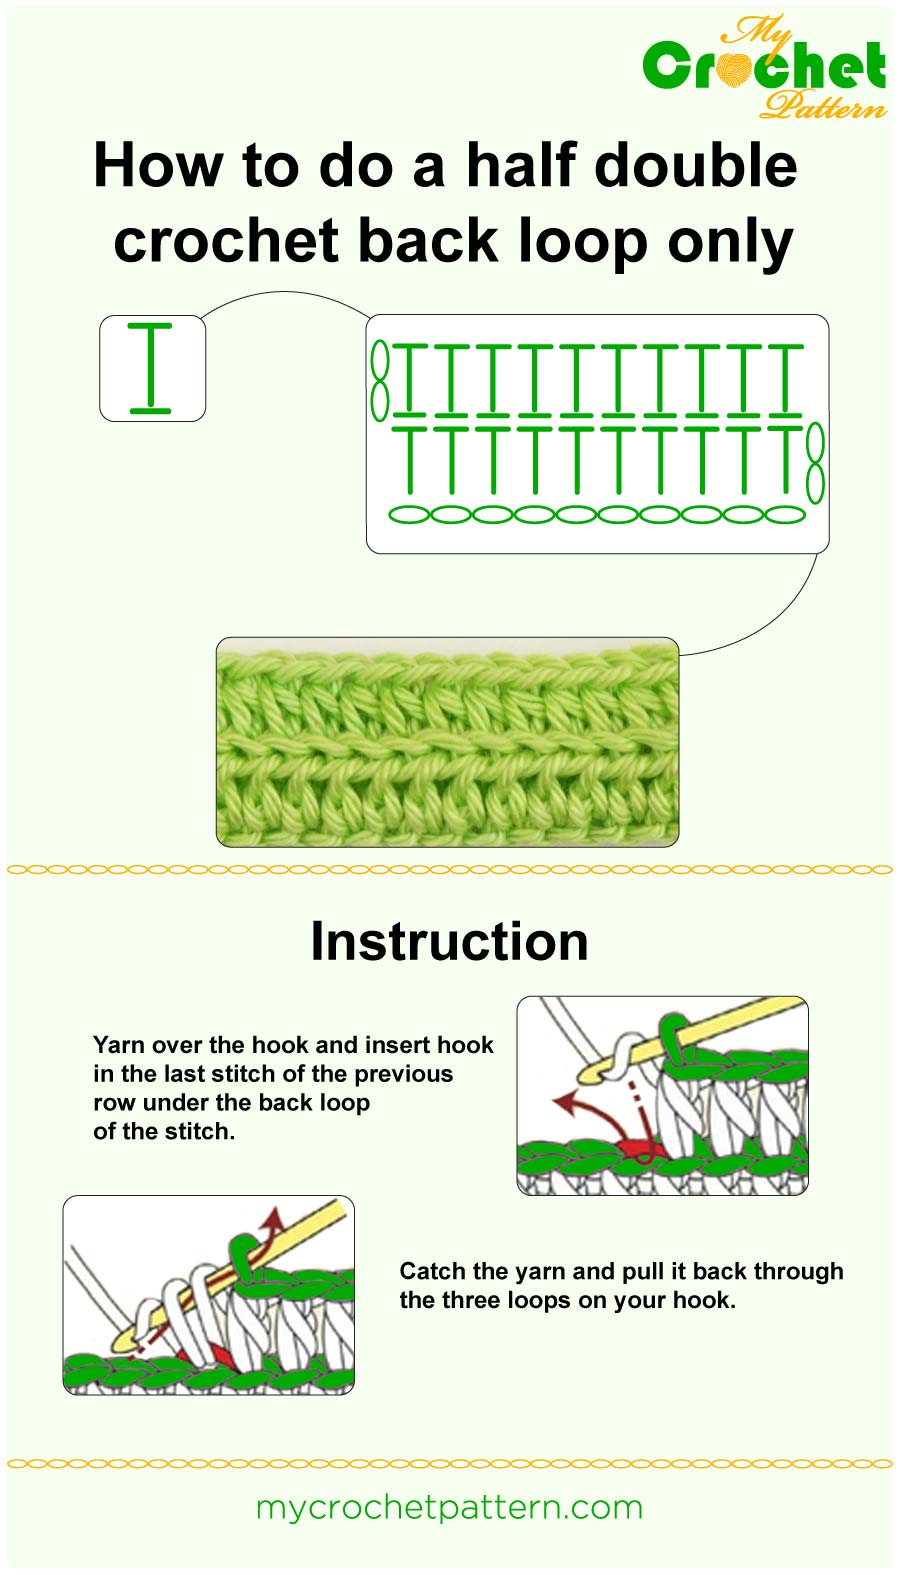 how to do a half double crochet back loop only - infographic